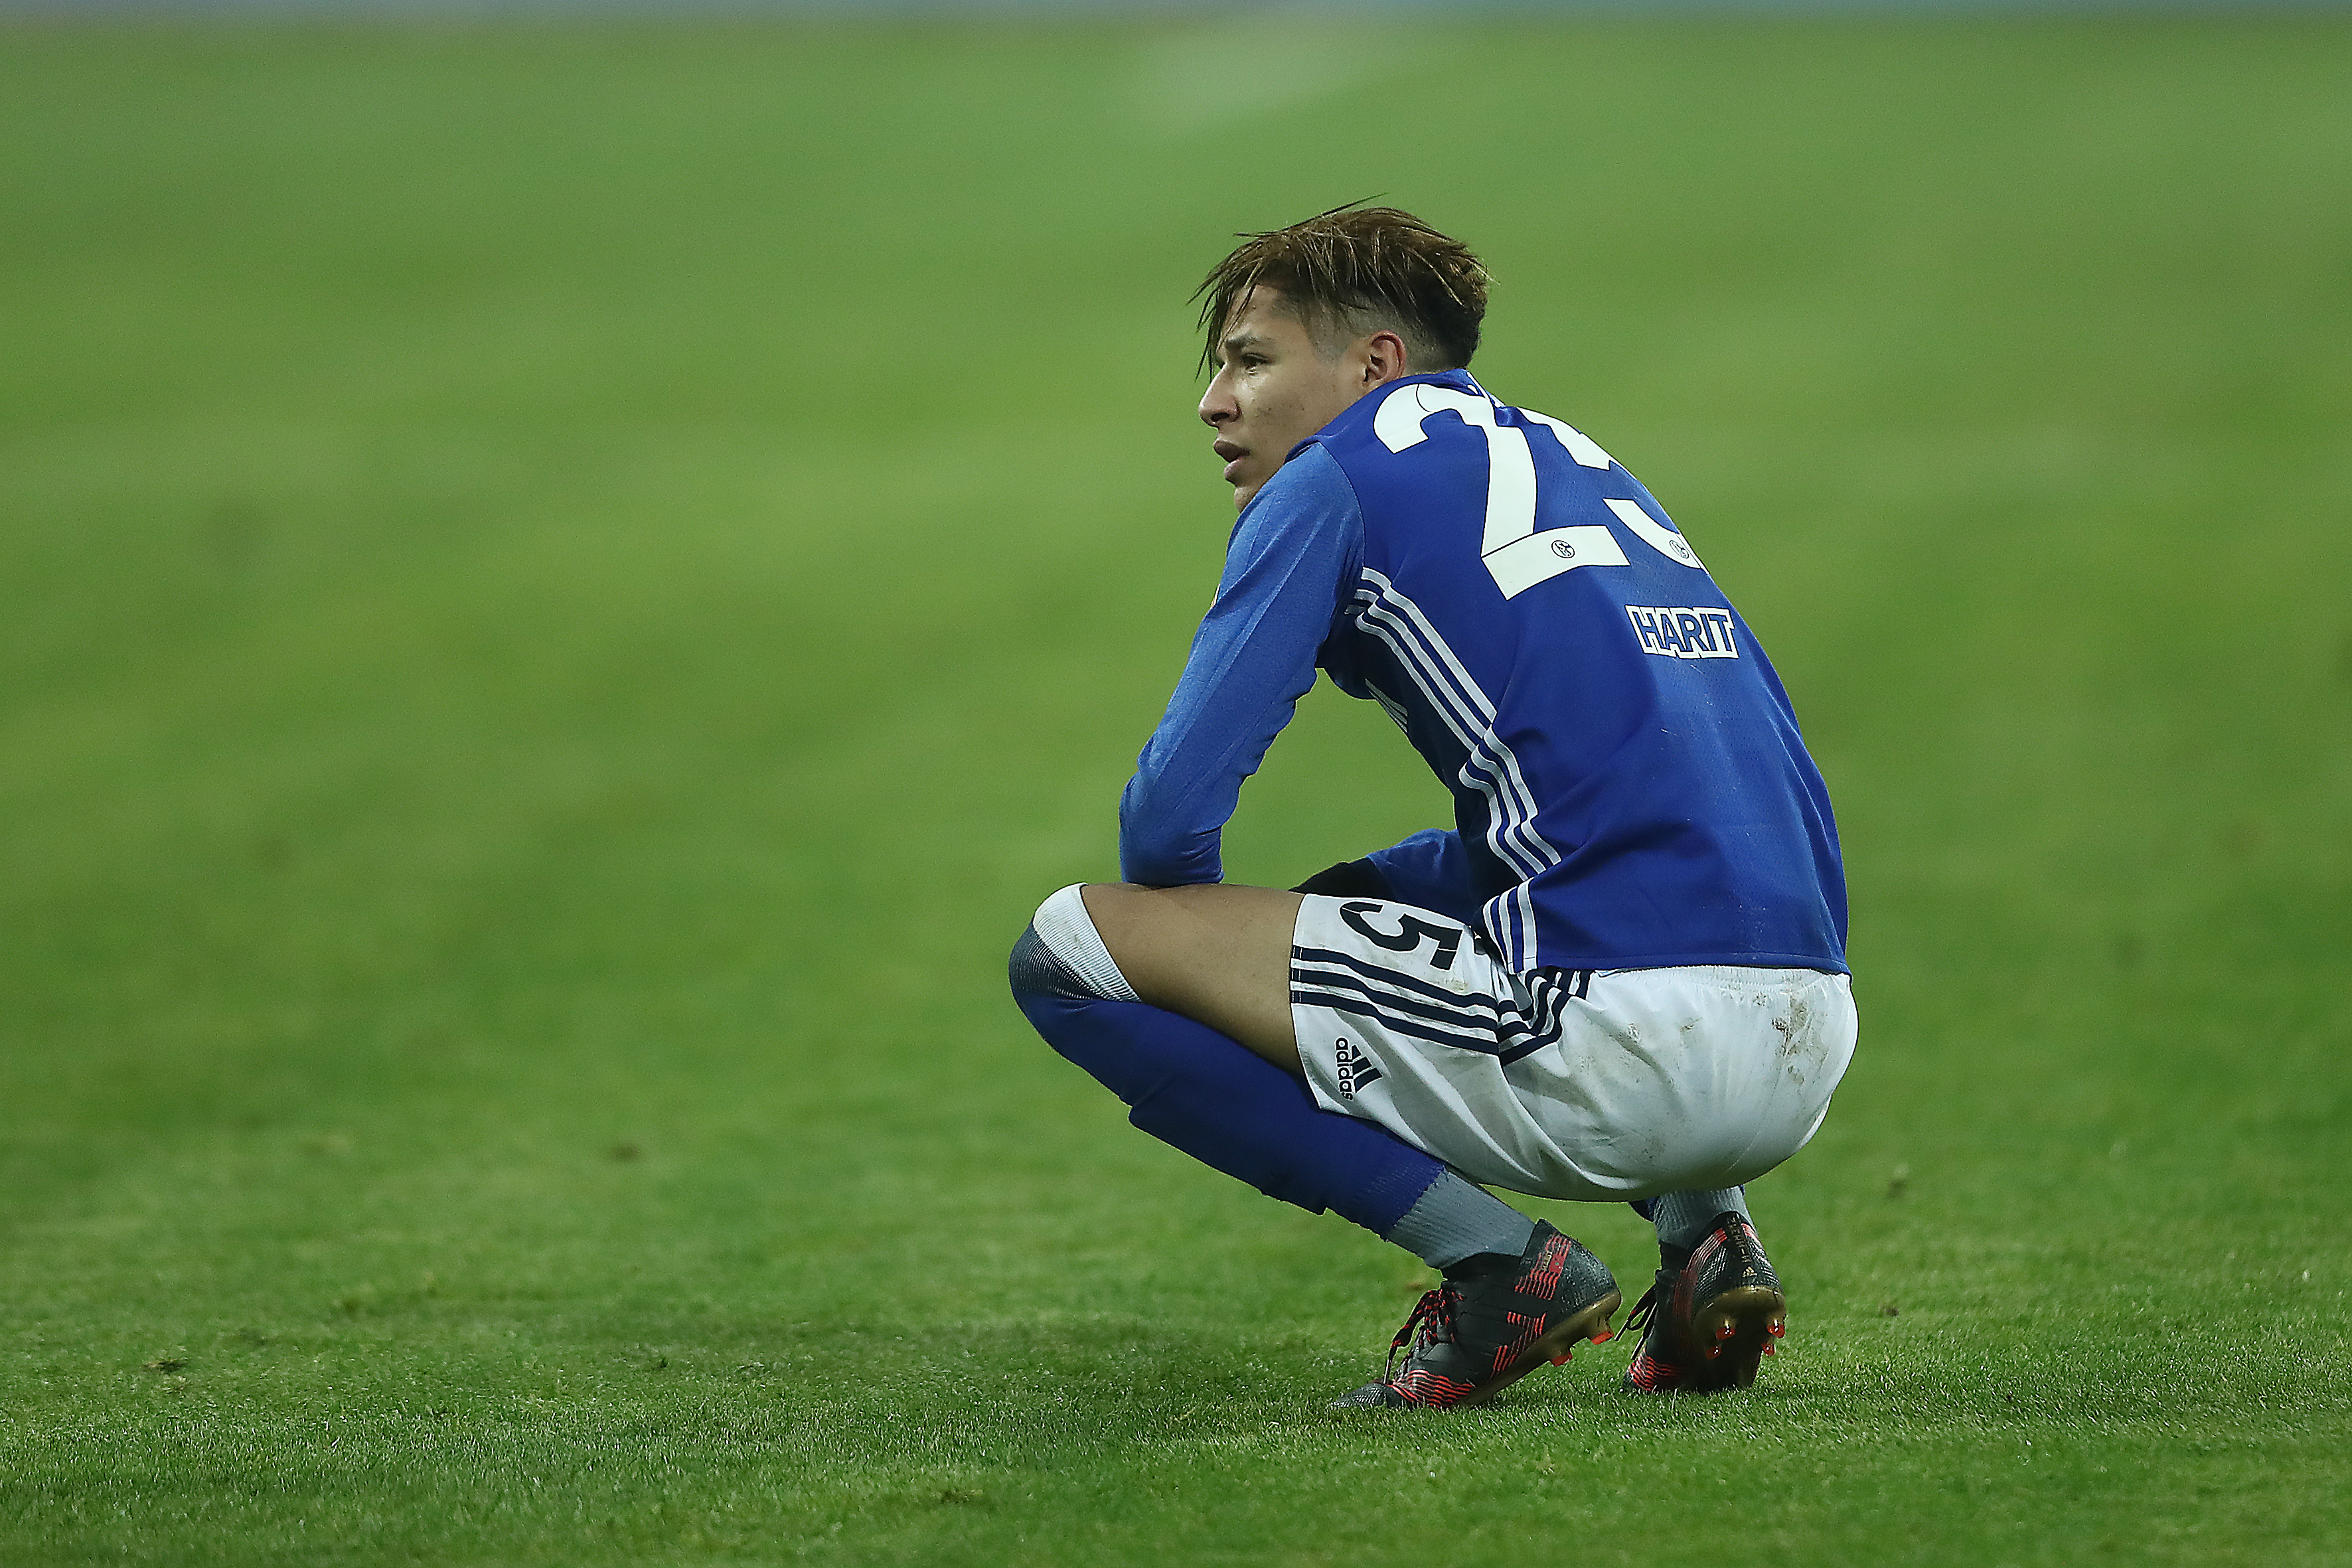 No Harit tomorrow. (Photo by Christof Koepsel/Bongarts/Getty Images)